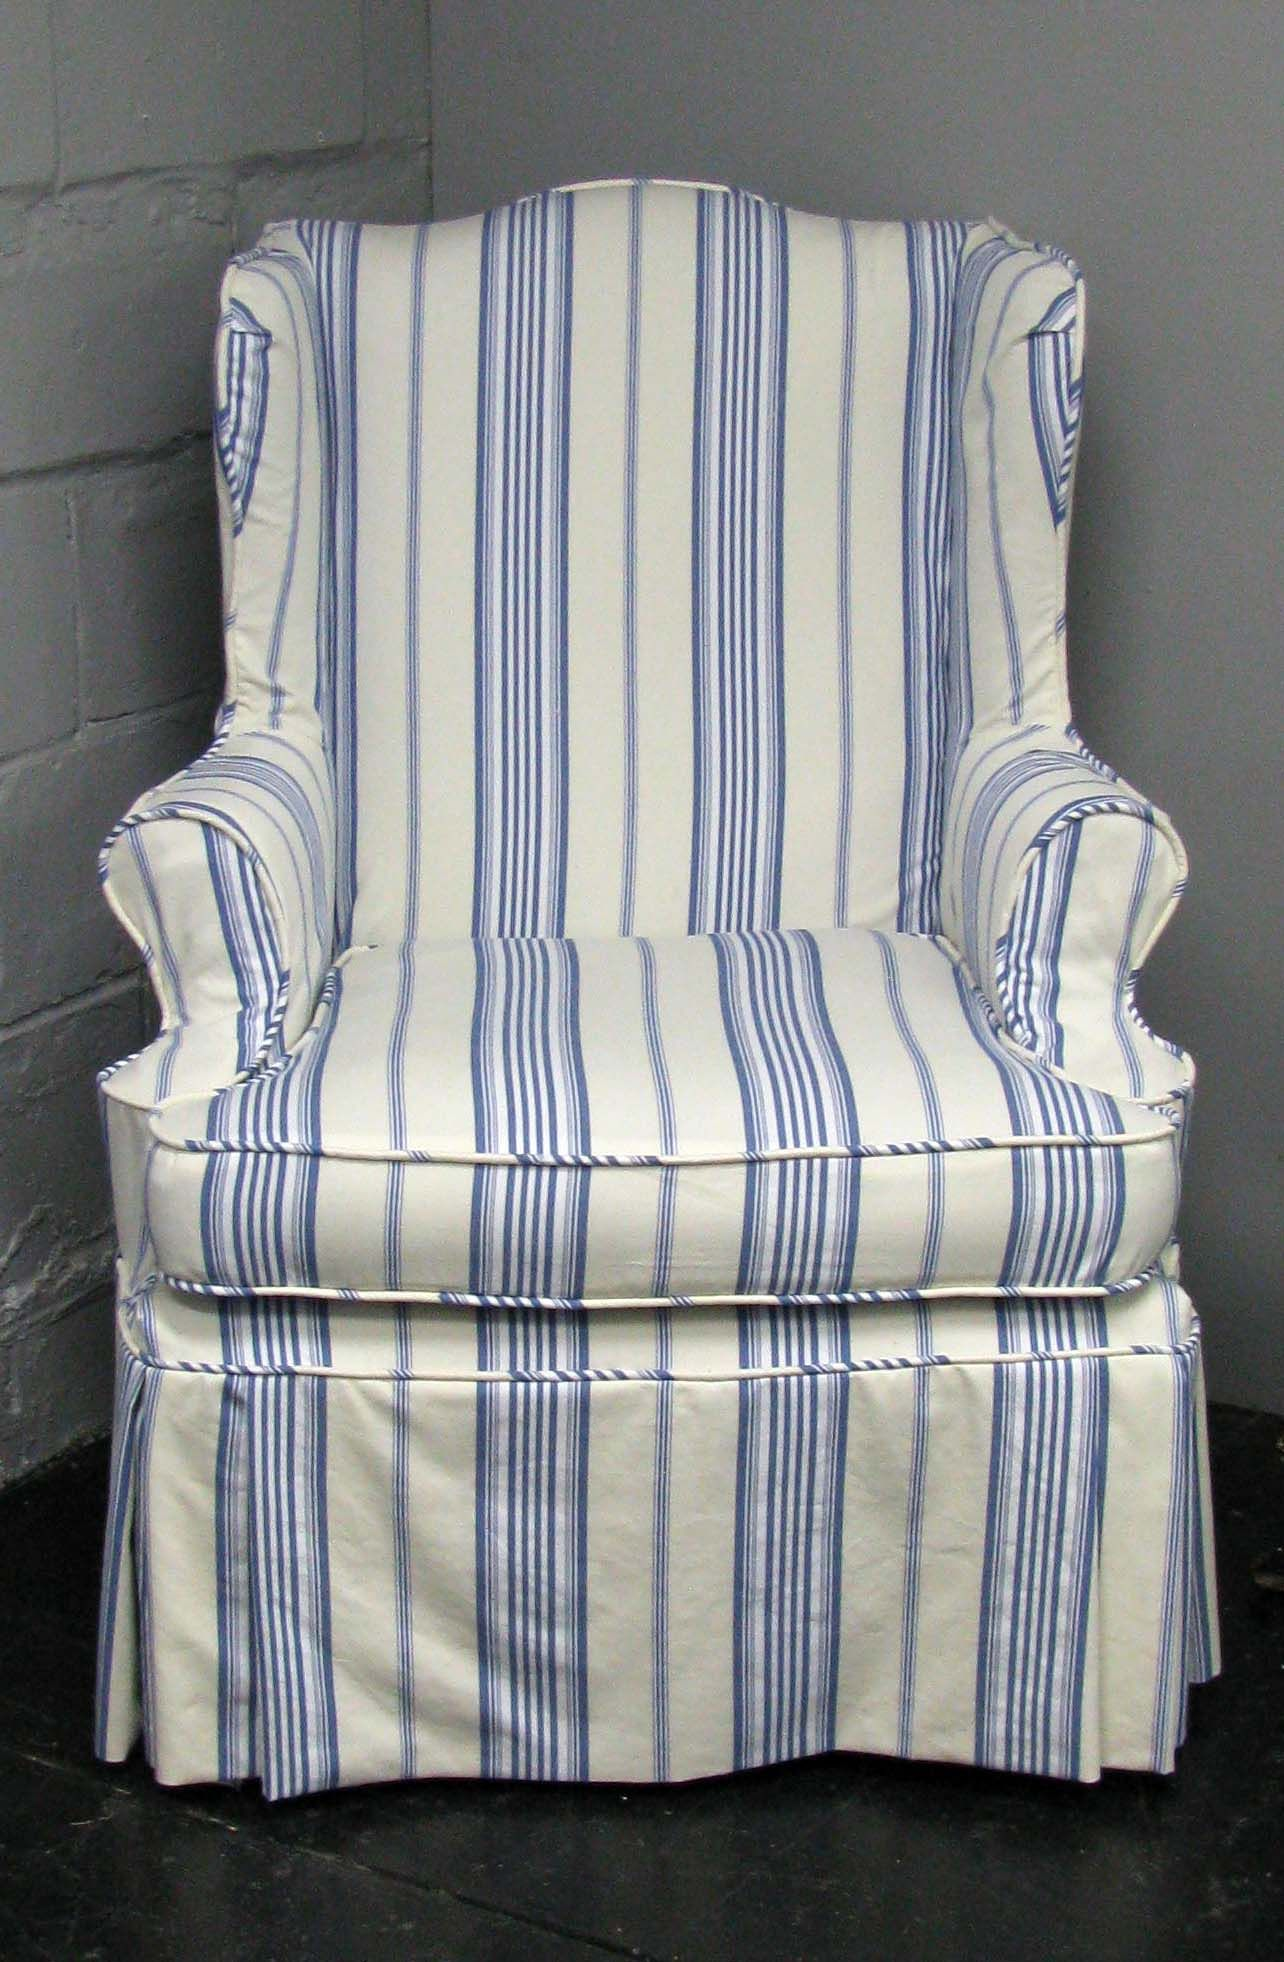 Charming Wing Chair Slipcover With White Wall Color And Lighting Lamp For Modern  Living Room Decor